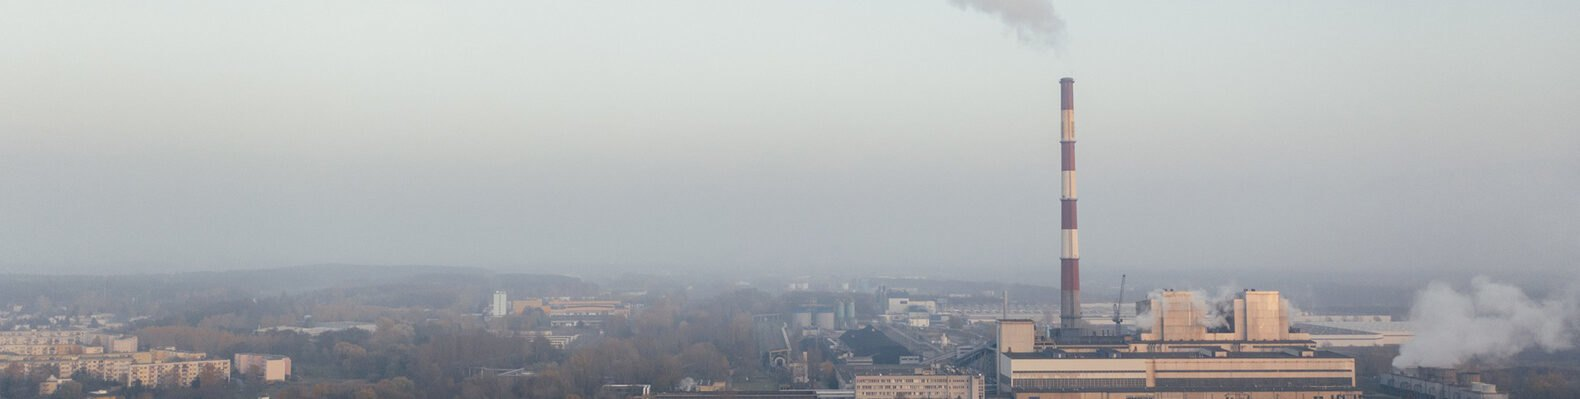 pollution from a factory creating smog over a city